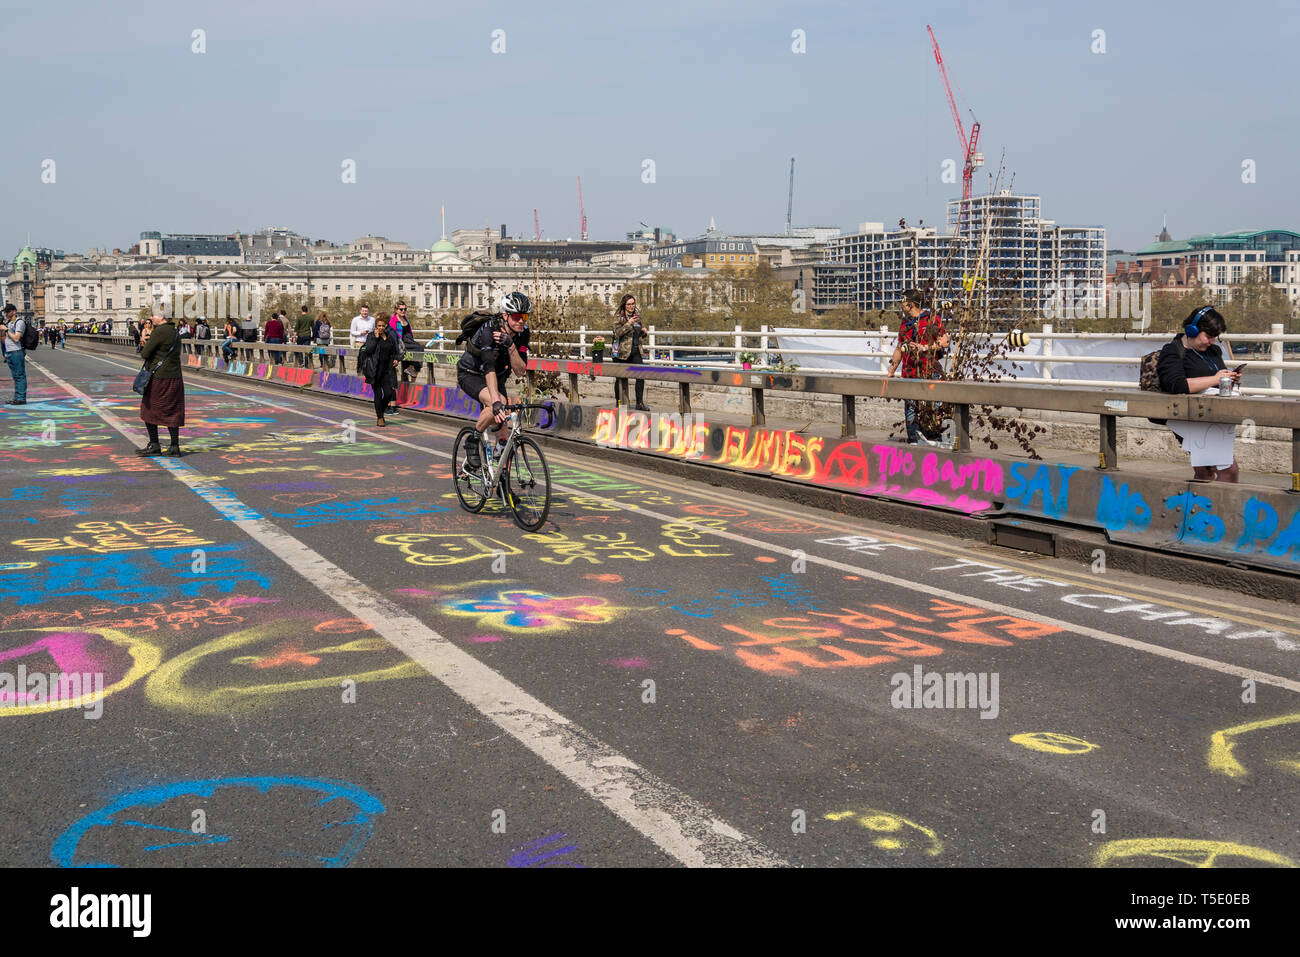 Extinction Rebellion protest on Waterloo Bridge, Road surface filled with colourfully written slogans and messages, London, UK - Stock Image